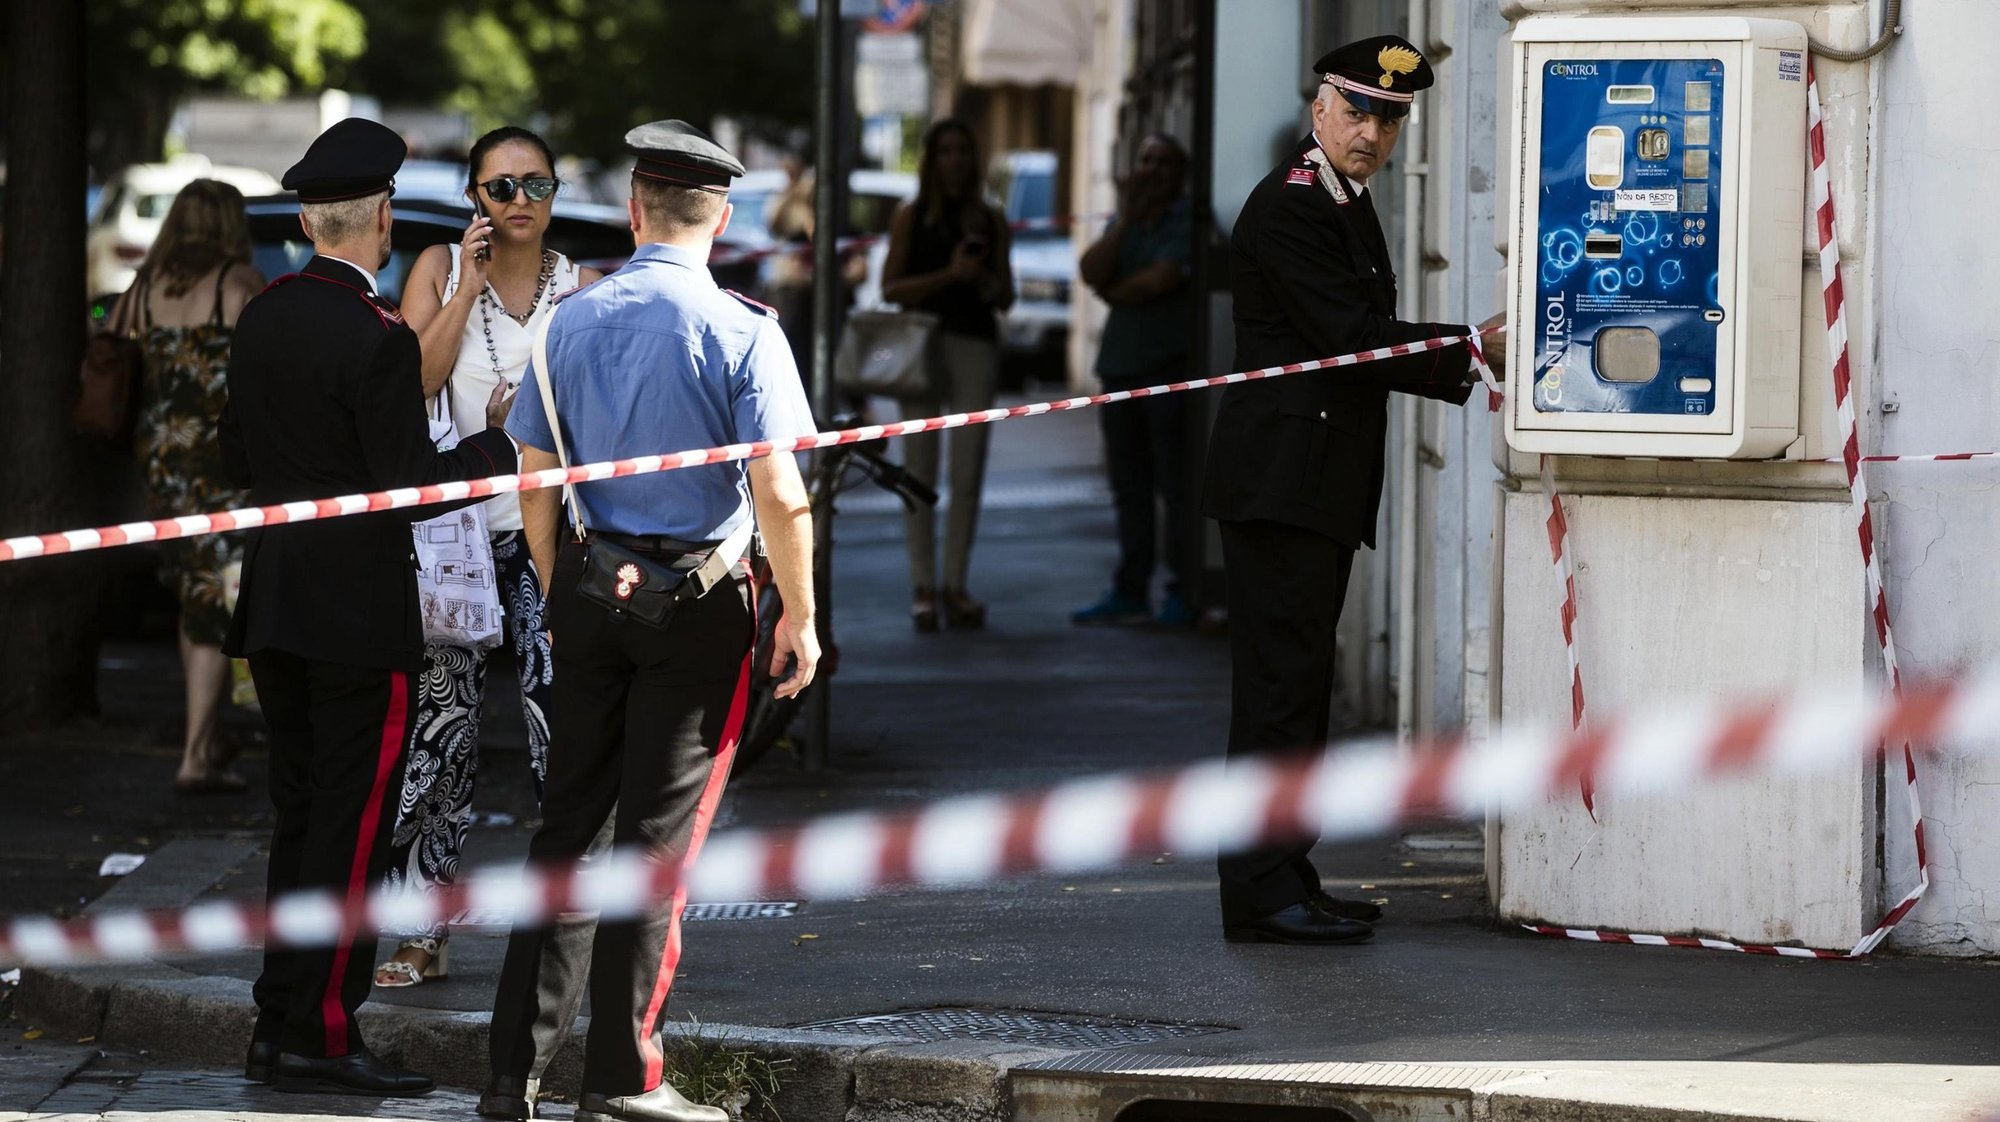 epa09180033 (FILE) - Carabinieri officer and forensic police work a crime scene where Vice Brigadier of Carabinieri Mario Cerciello Rega was shot dead the night before in via Pietro Cossa, Rome, Italy, 26 July 2019 (reissued 06 May 2021). US college students Gabriel Natale-Hjorth and Finnegan Lee Elder were sentenced to life in prison on 05 May 2021 for the 2019 murder of Carabinieri paramilitary police officer Mario Cerciello Rega in Rome.  EPA/ANGELO CARCONI